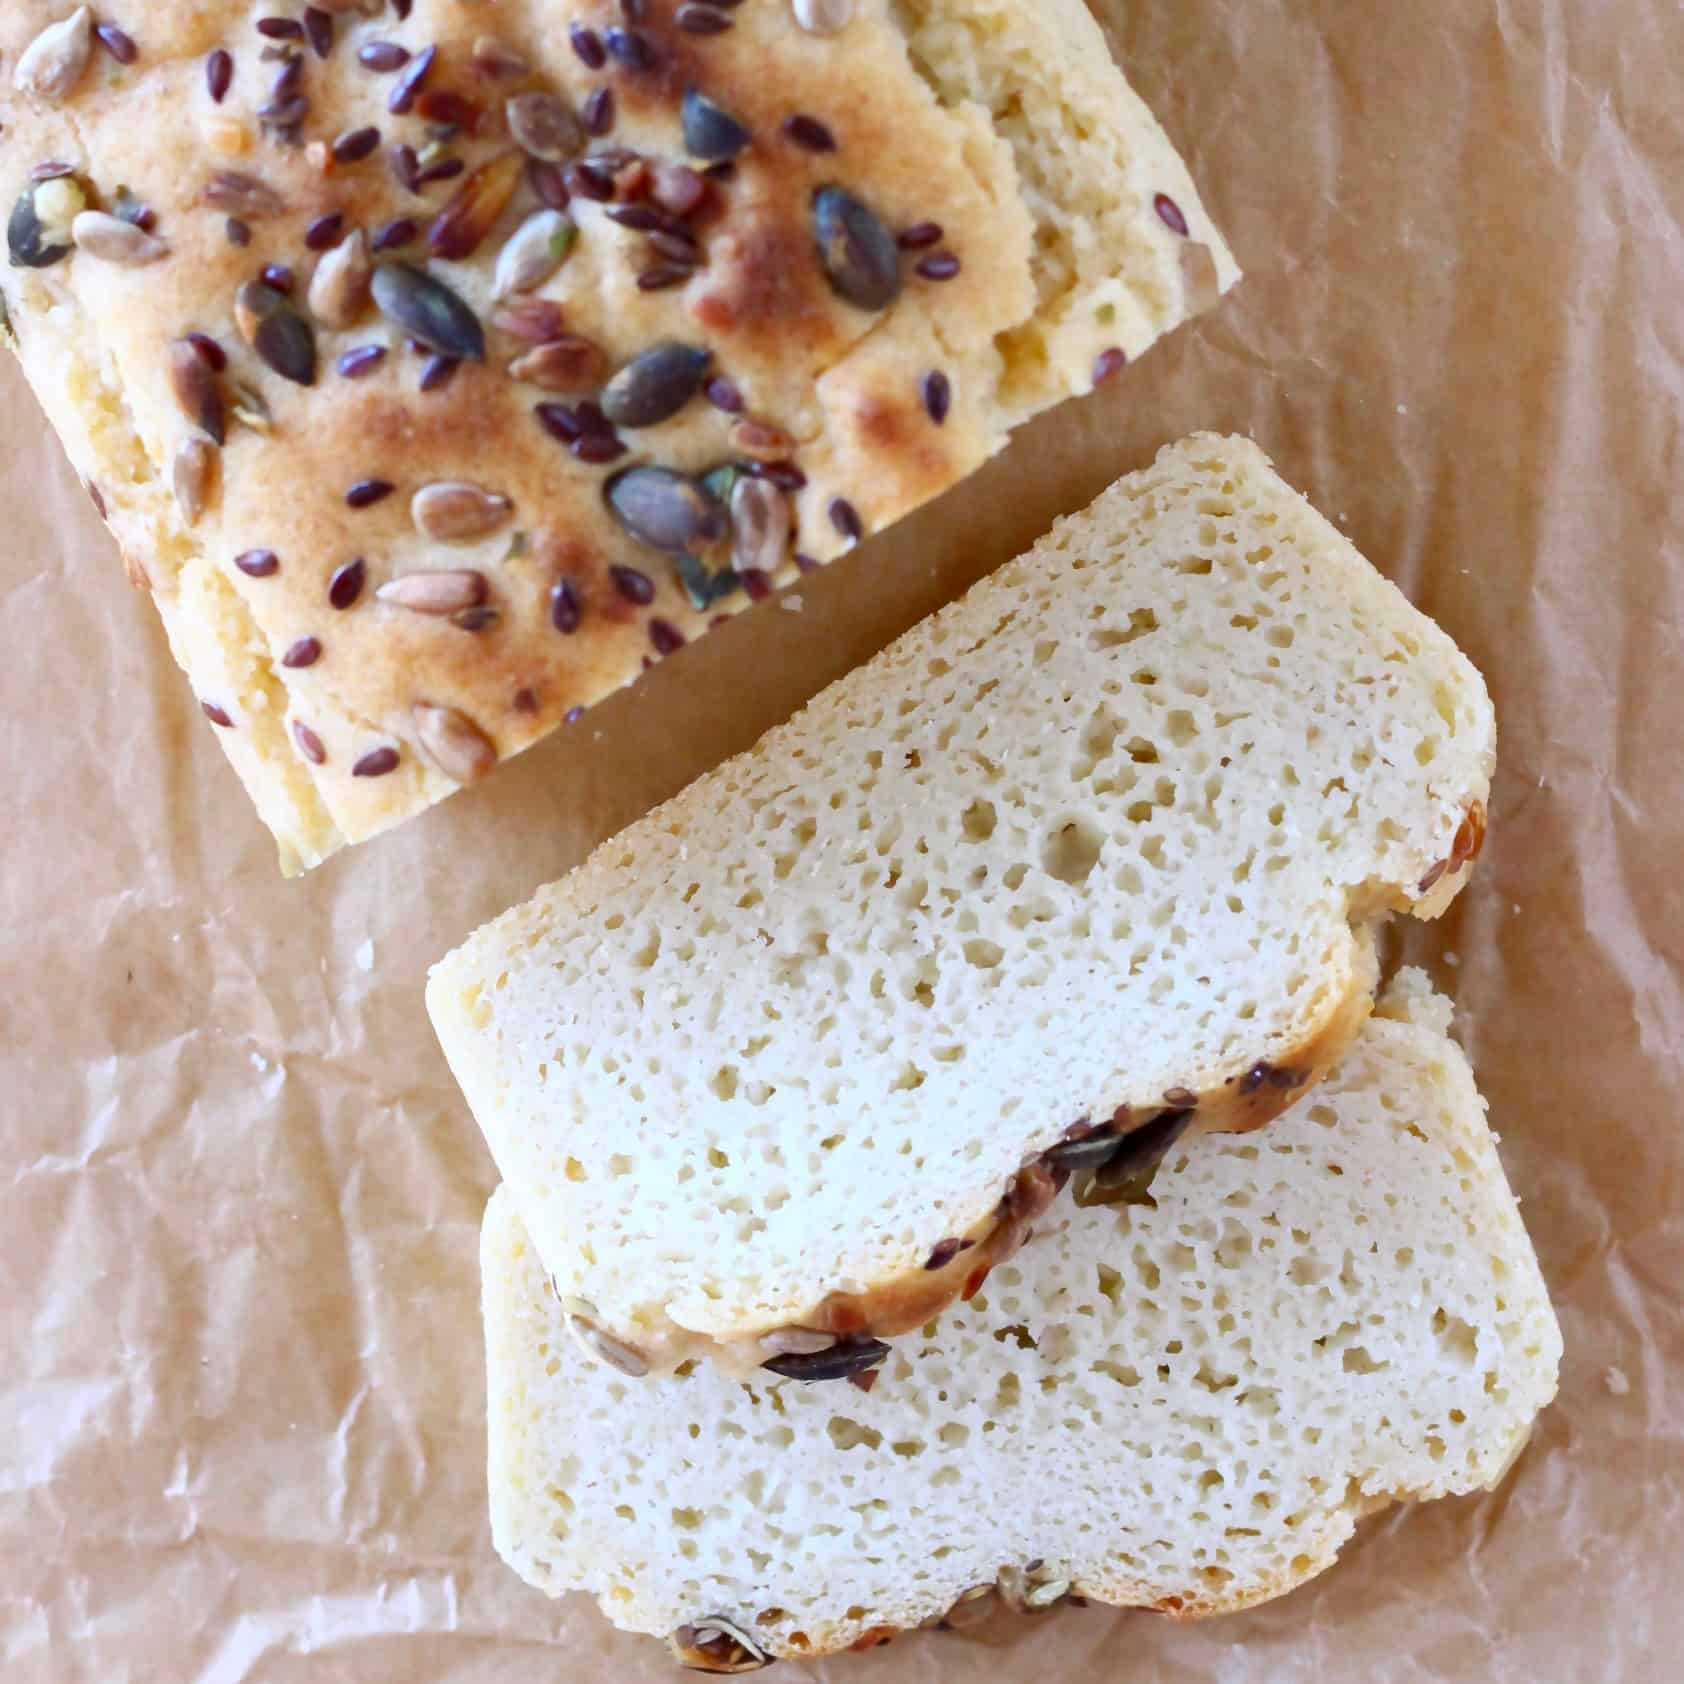 A loaf of brown bread sprinkled with mixed seeds with two slices of white bread next to it against a sheet of brown baking paper